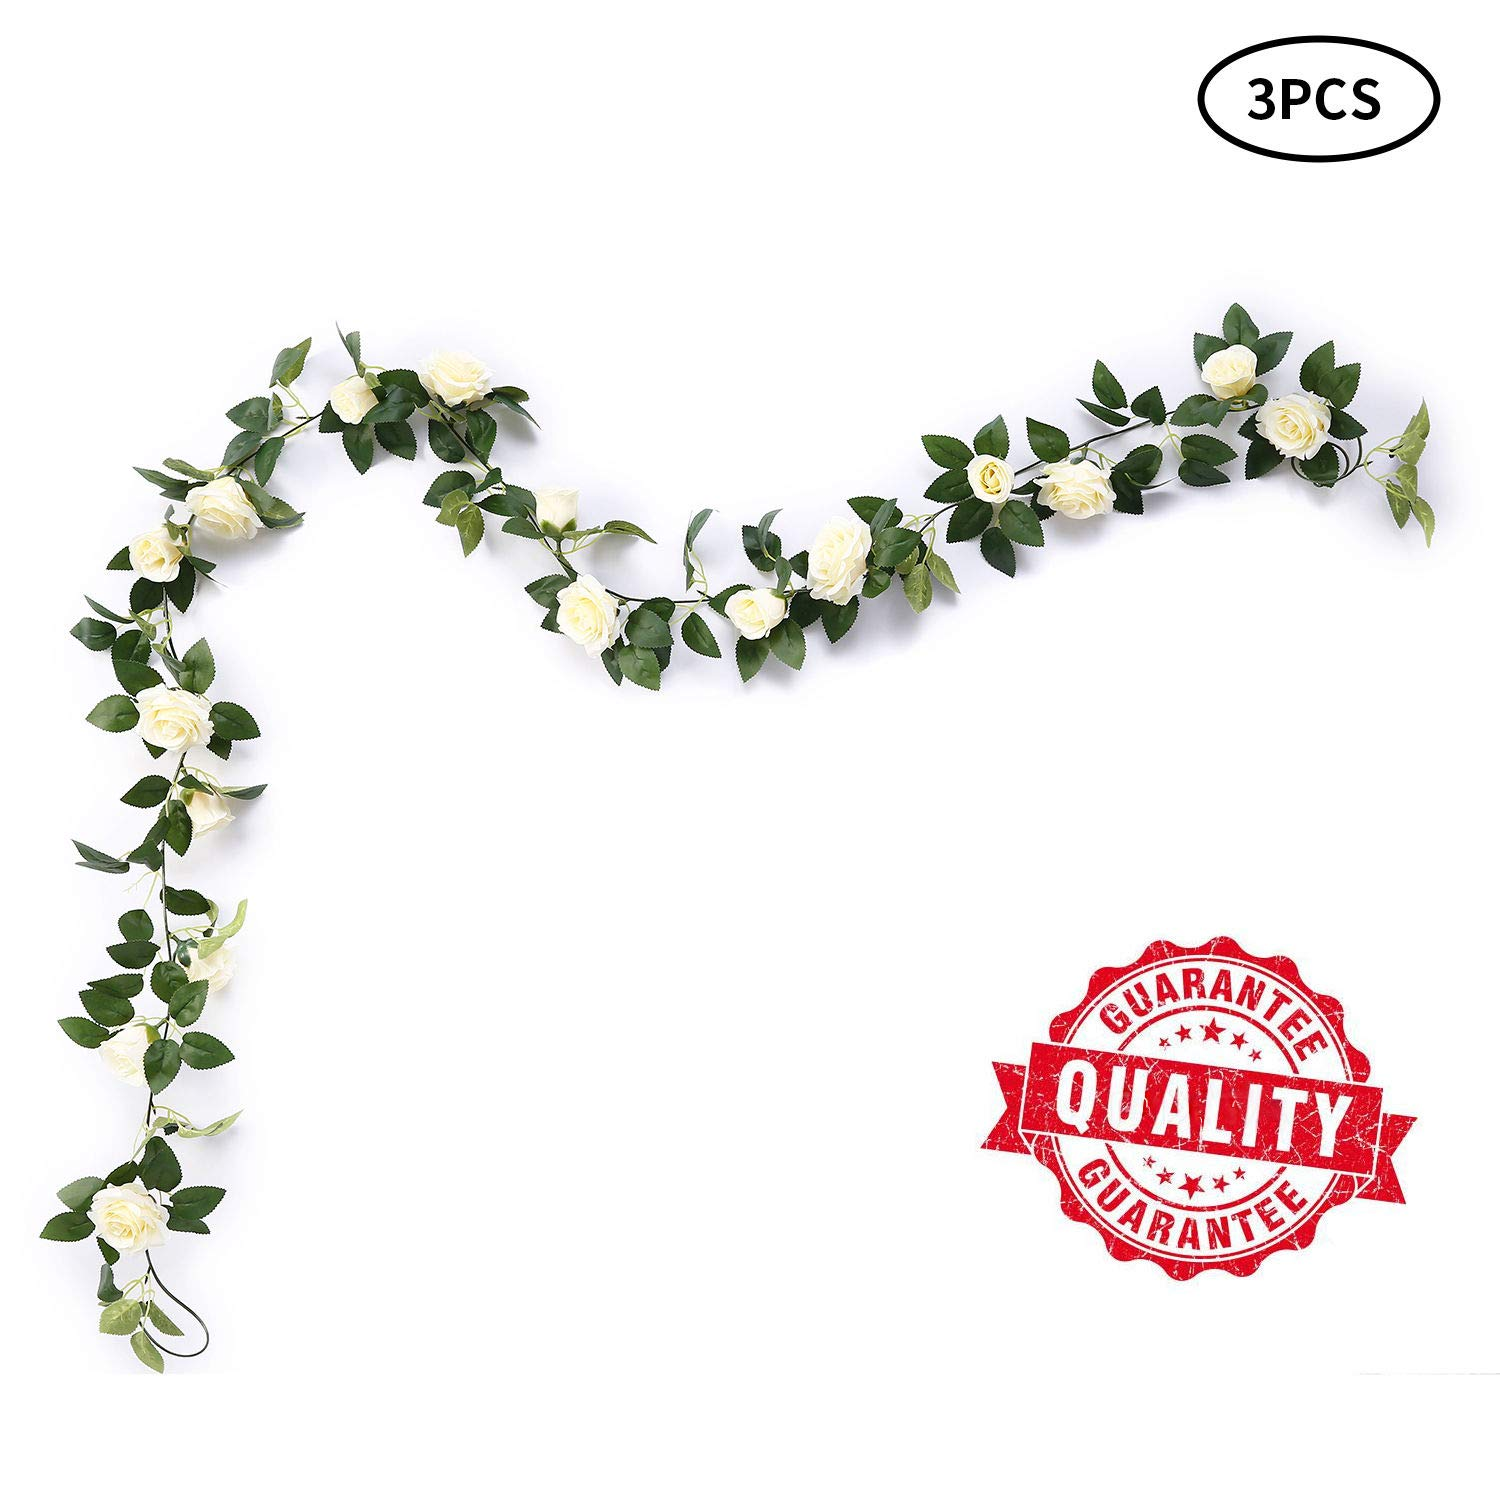 MEHELANY Artificial Rose Vine Flowers with Green Leaves 7.5ft Fake Silk Rose Hanging Vine Flowers Garland Ivy Plants for Home Wedding Party Garden Wall Decoration (Cream) (Cream, 3)…